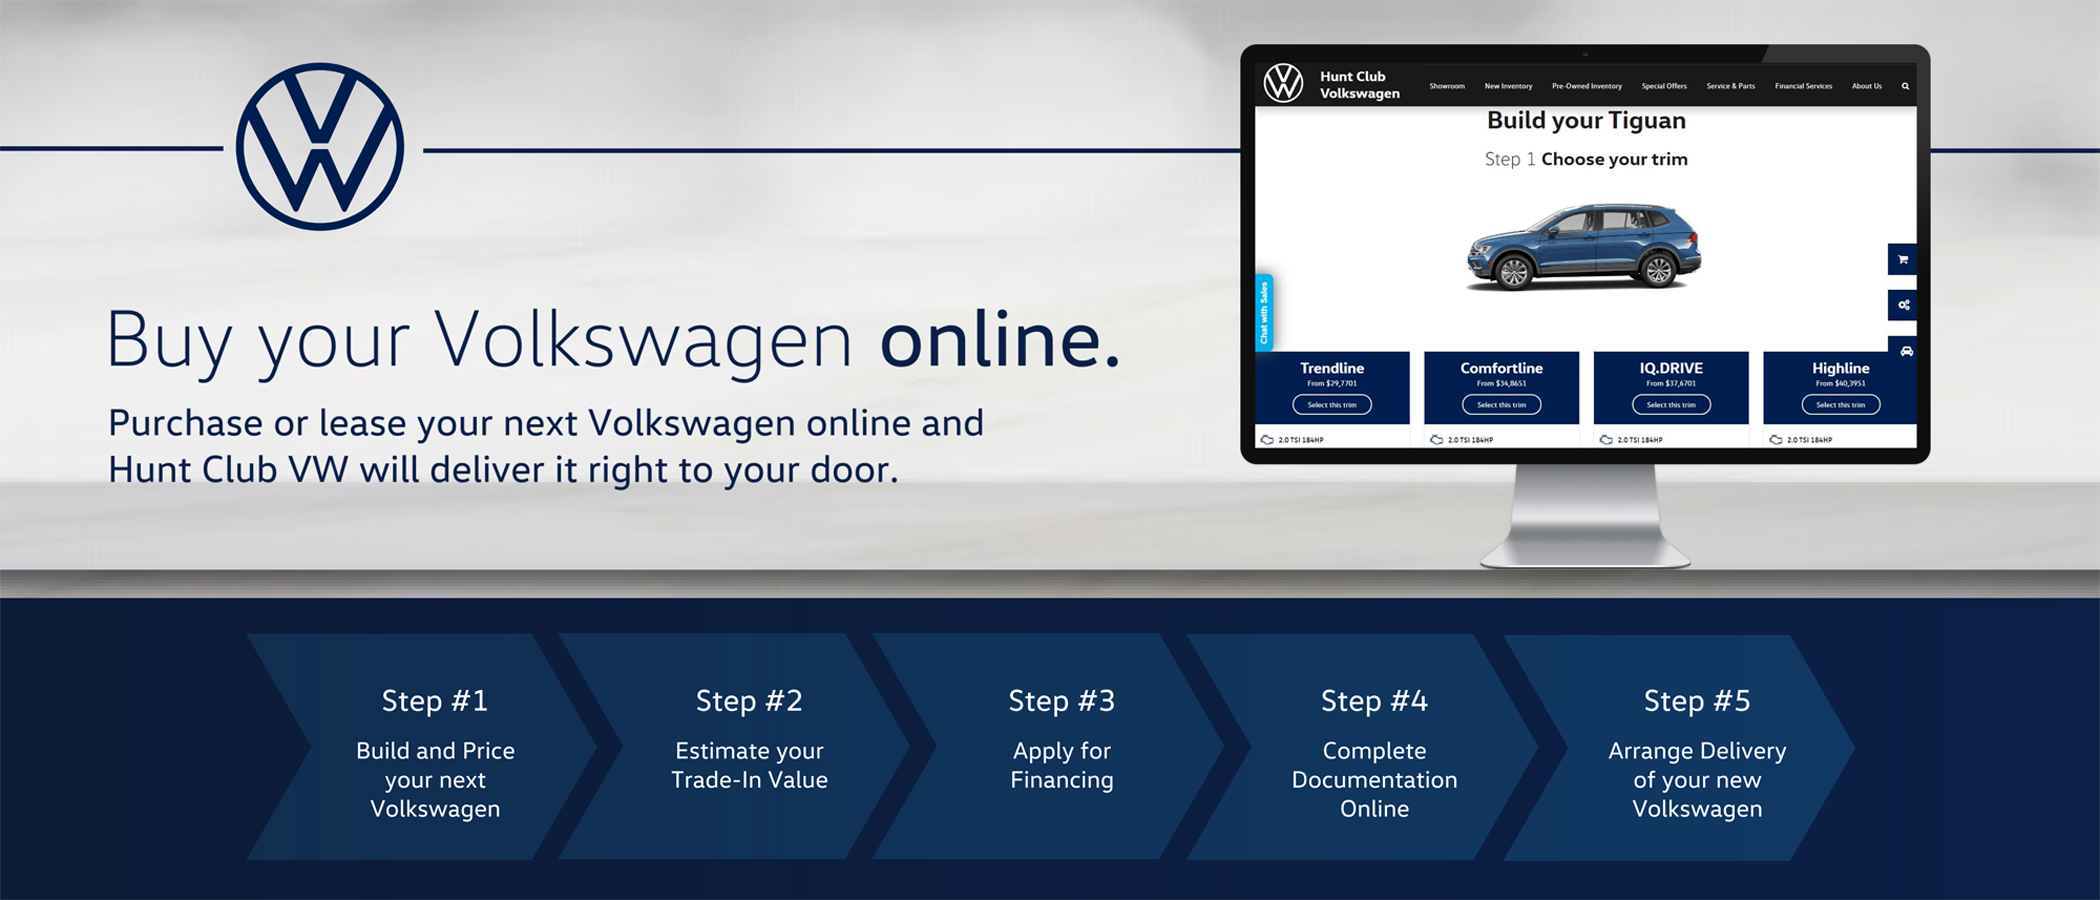 Volkswagen buy online slider hunt club vw ottawa